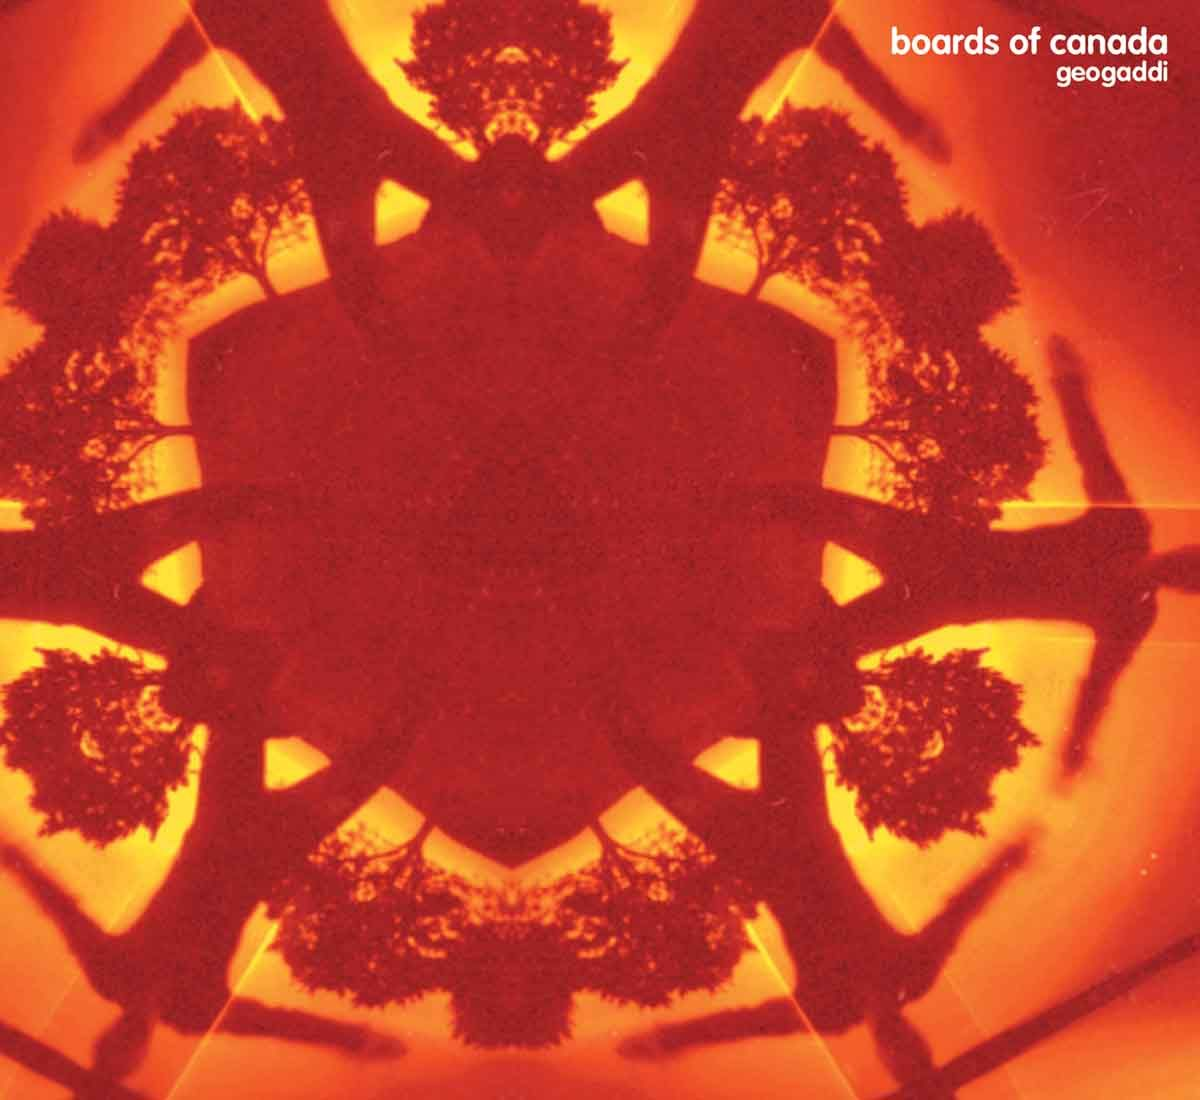 Boards Of Canada Geogaddi Boards Of Canada Music Album Covers Electronic Music